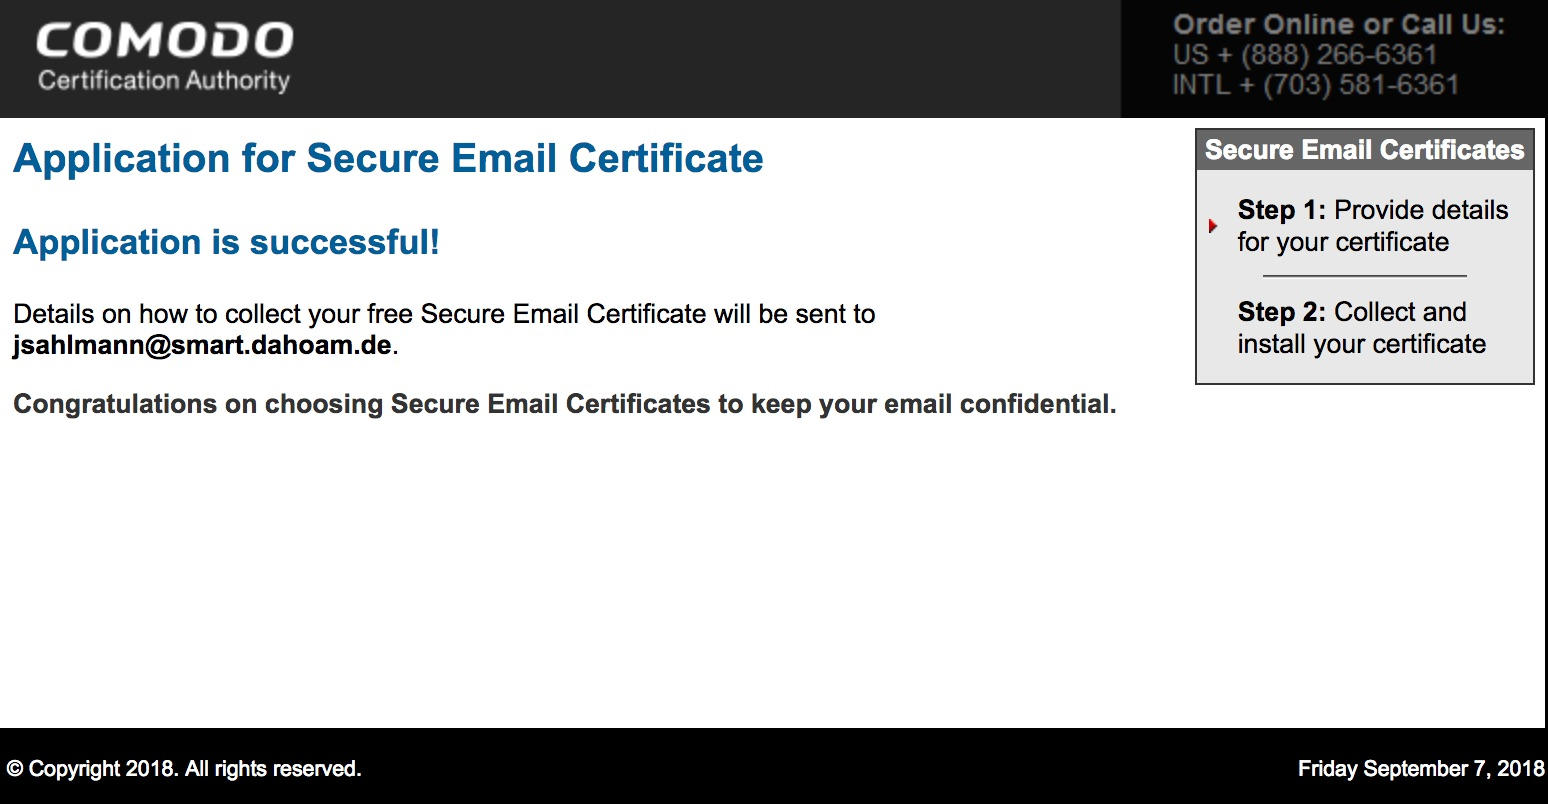 Secure_Email_Certificates_-_Application_1.jpg